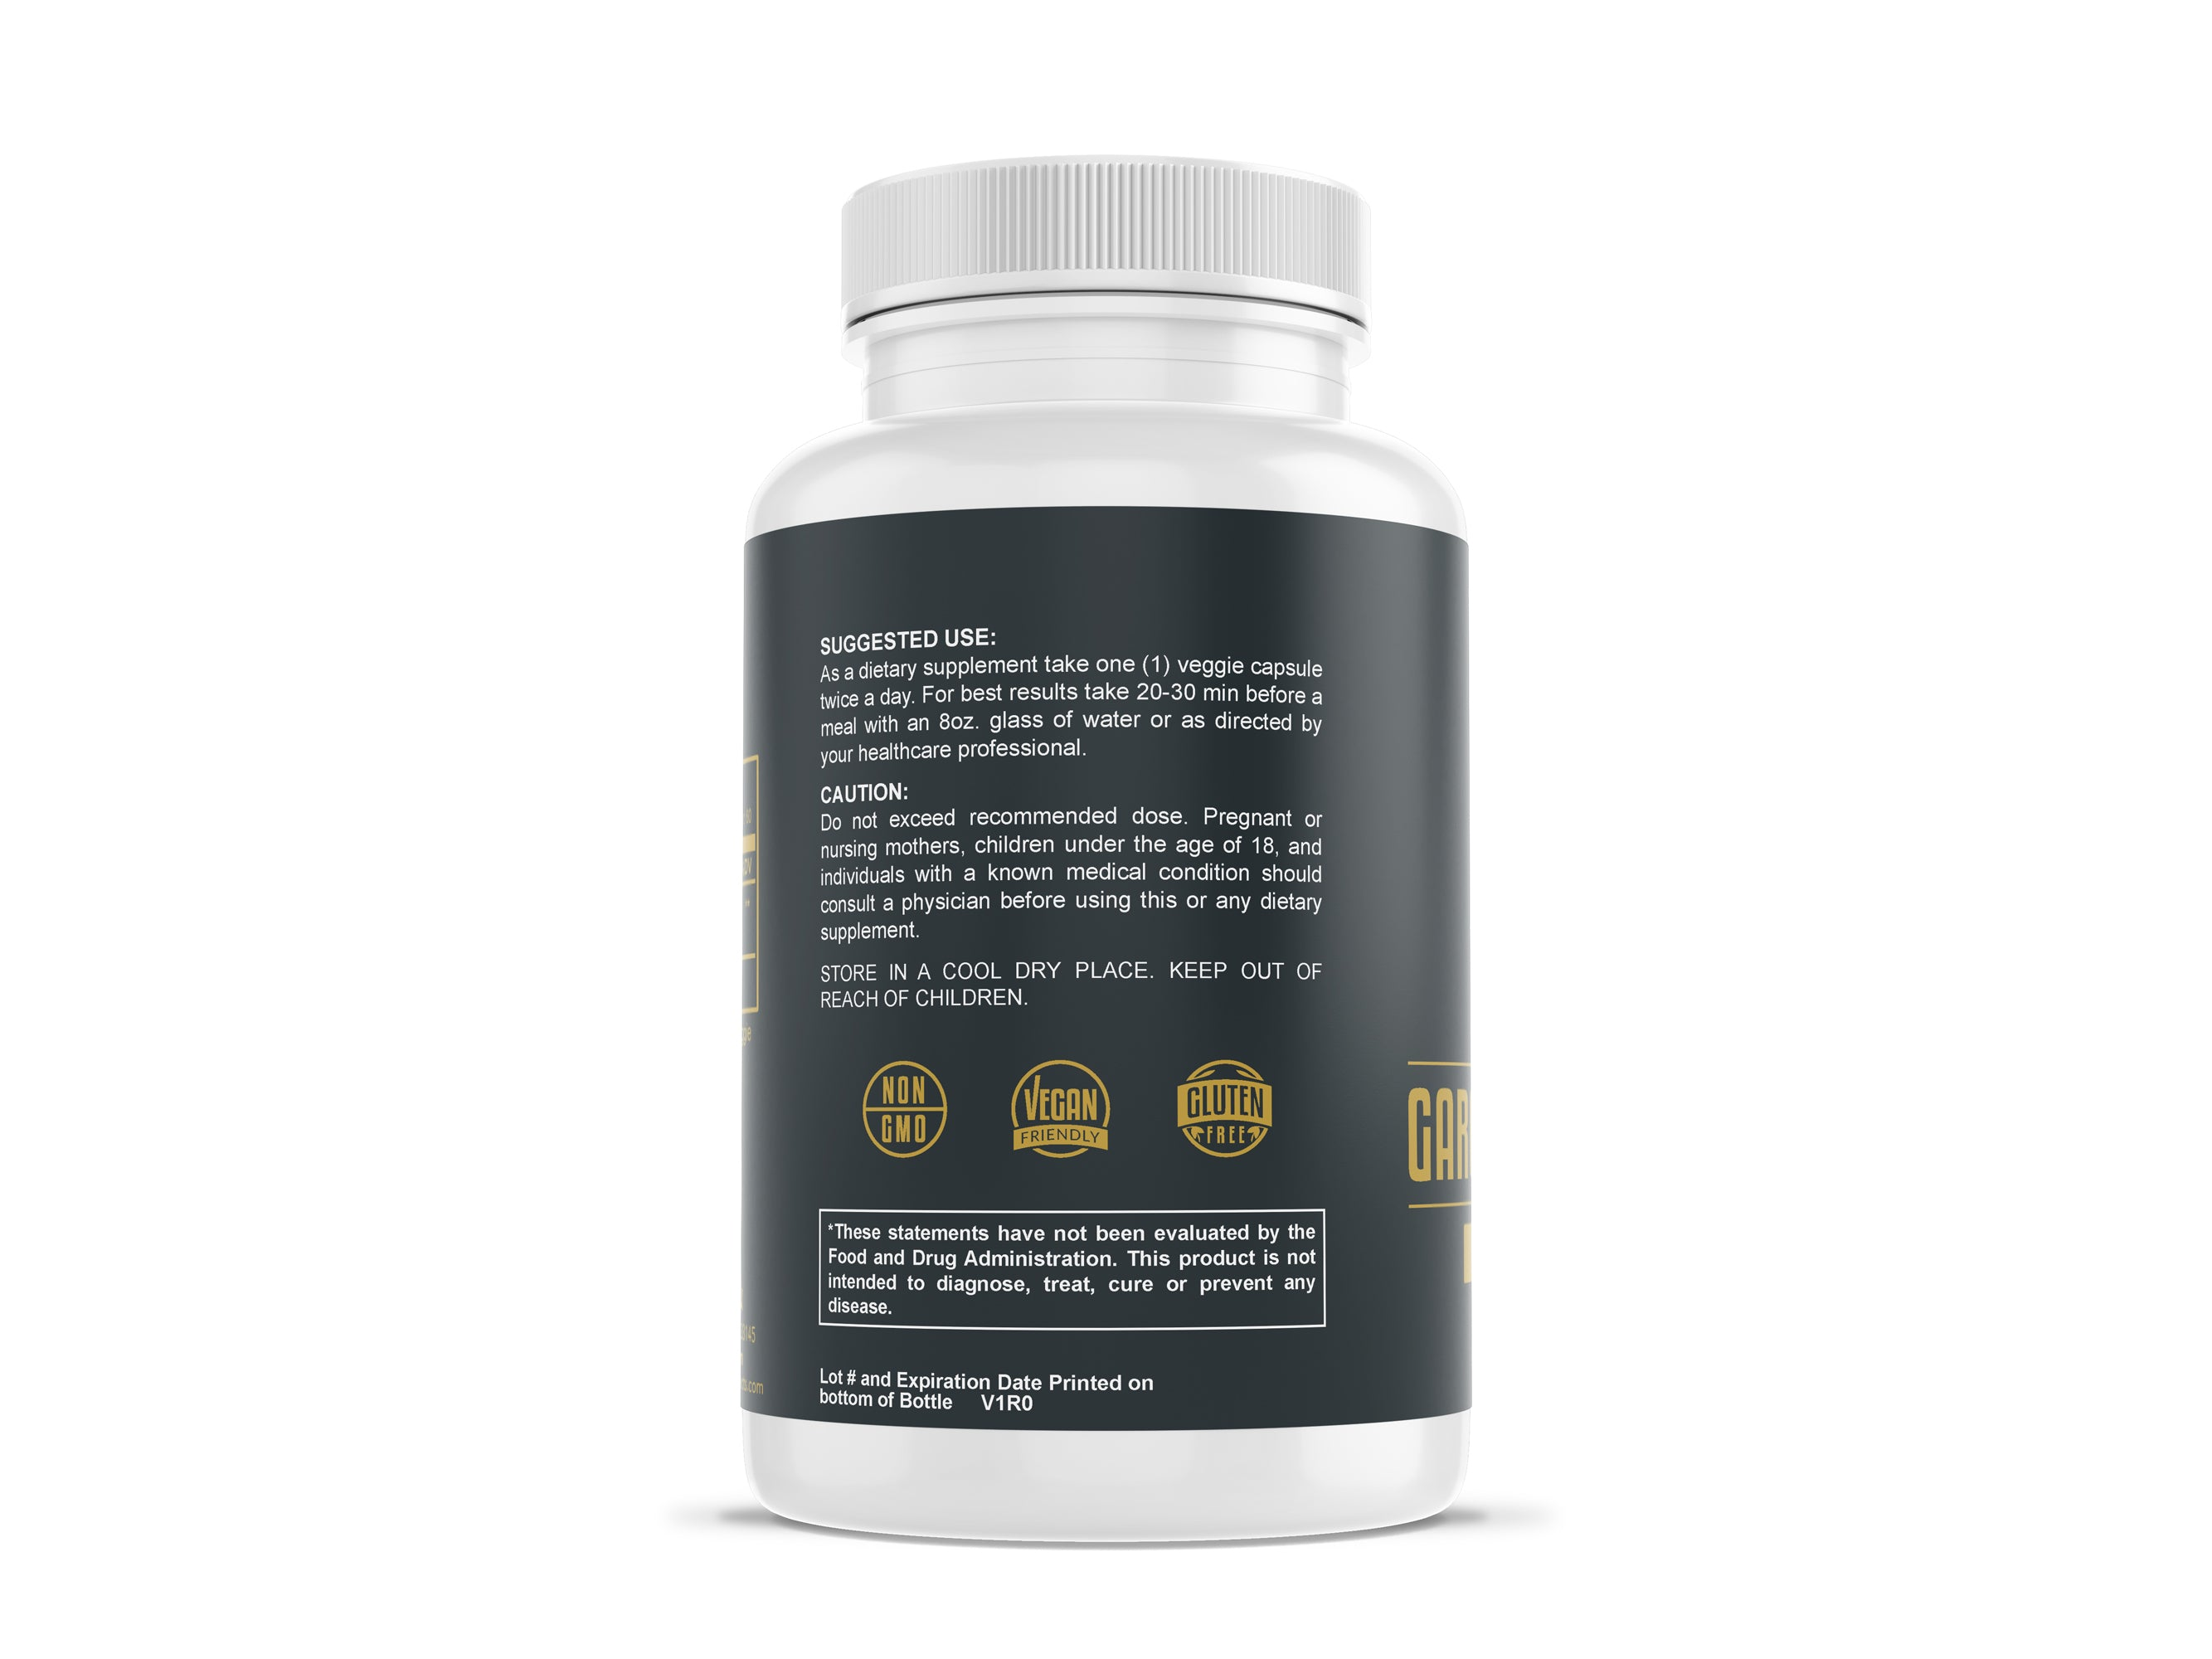 Charles Men's Products Garcinia Cambogia, 95% HCA Complex. The intended benefits of this supplement include helping to prevent fat storage, suppress appetite, act as a general sleep aid, and to help boost mood